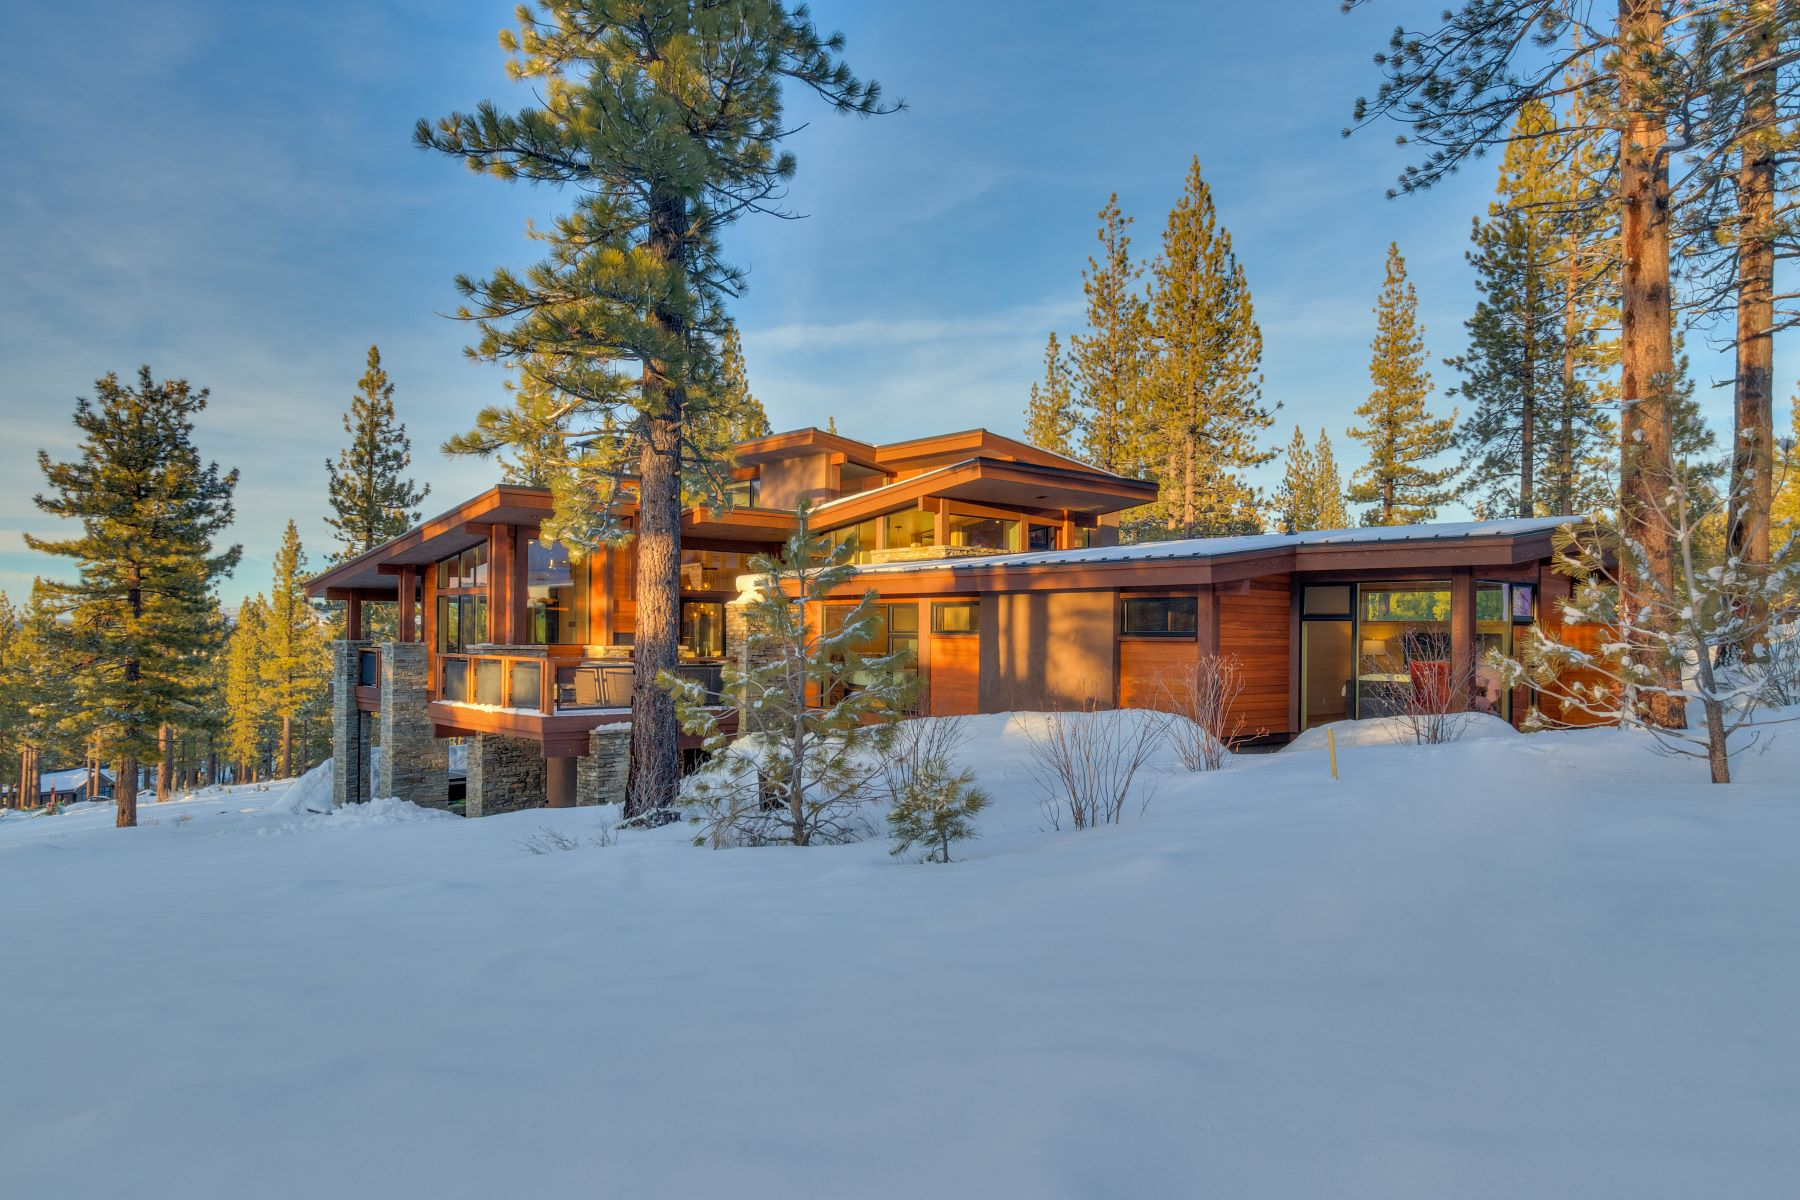 Single Family Home for Active at 8273 Ehrman Drive, Truckee, CA 8273 Ehrman Drive Truckee, California 96161 United States